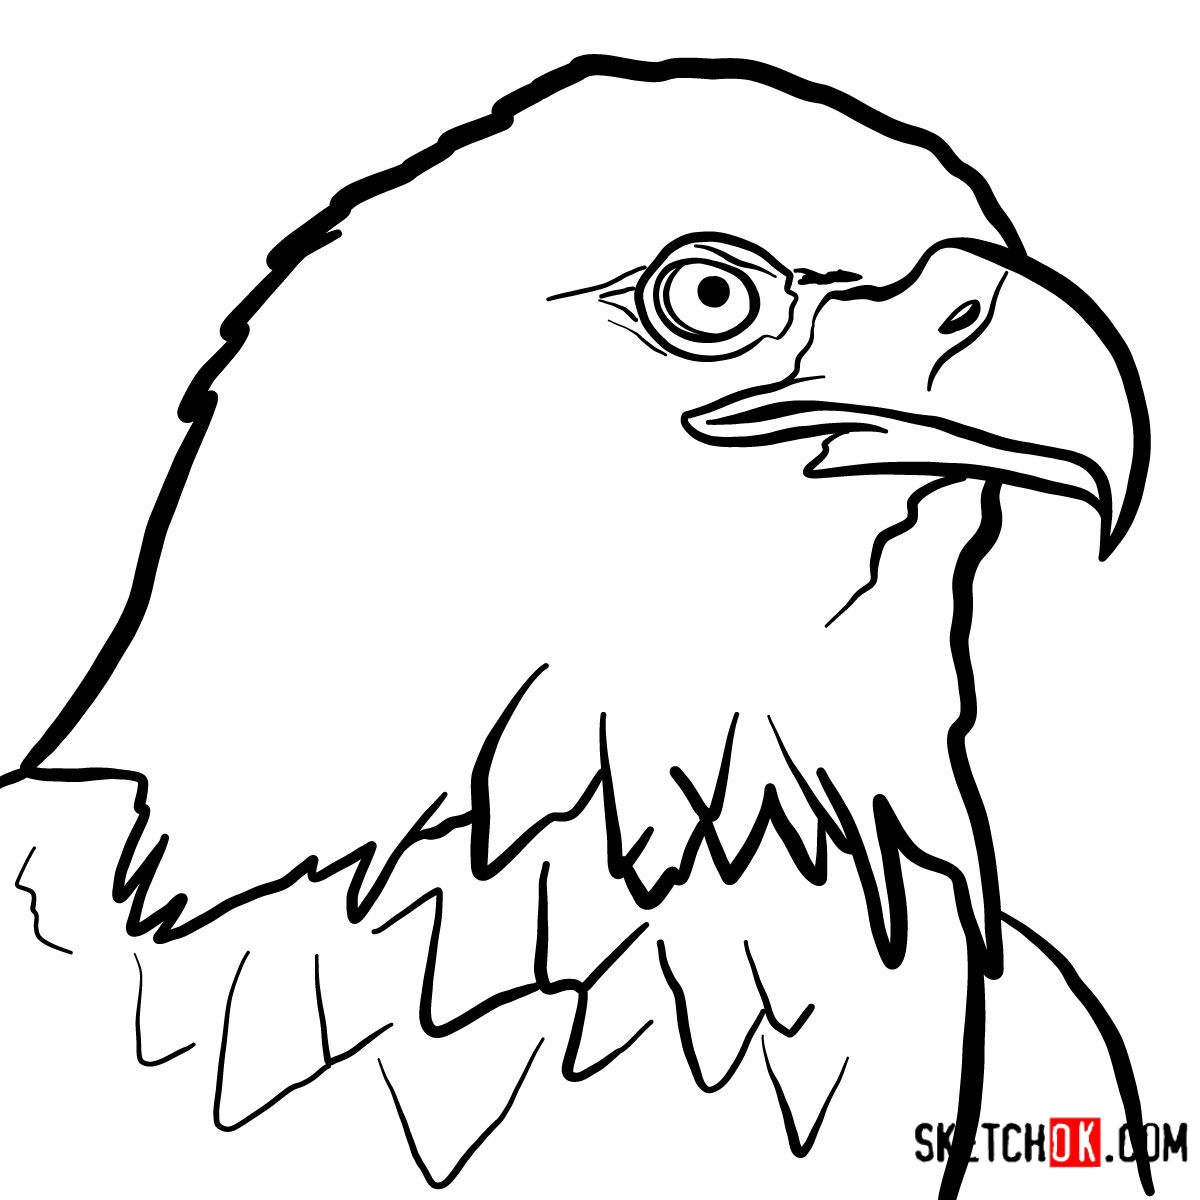 How to draw bald eagles head birds coloring